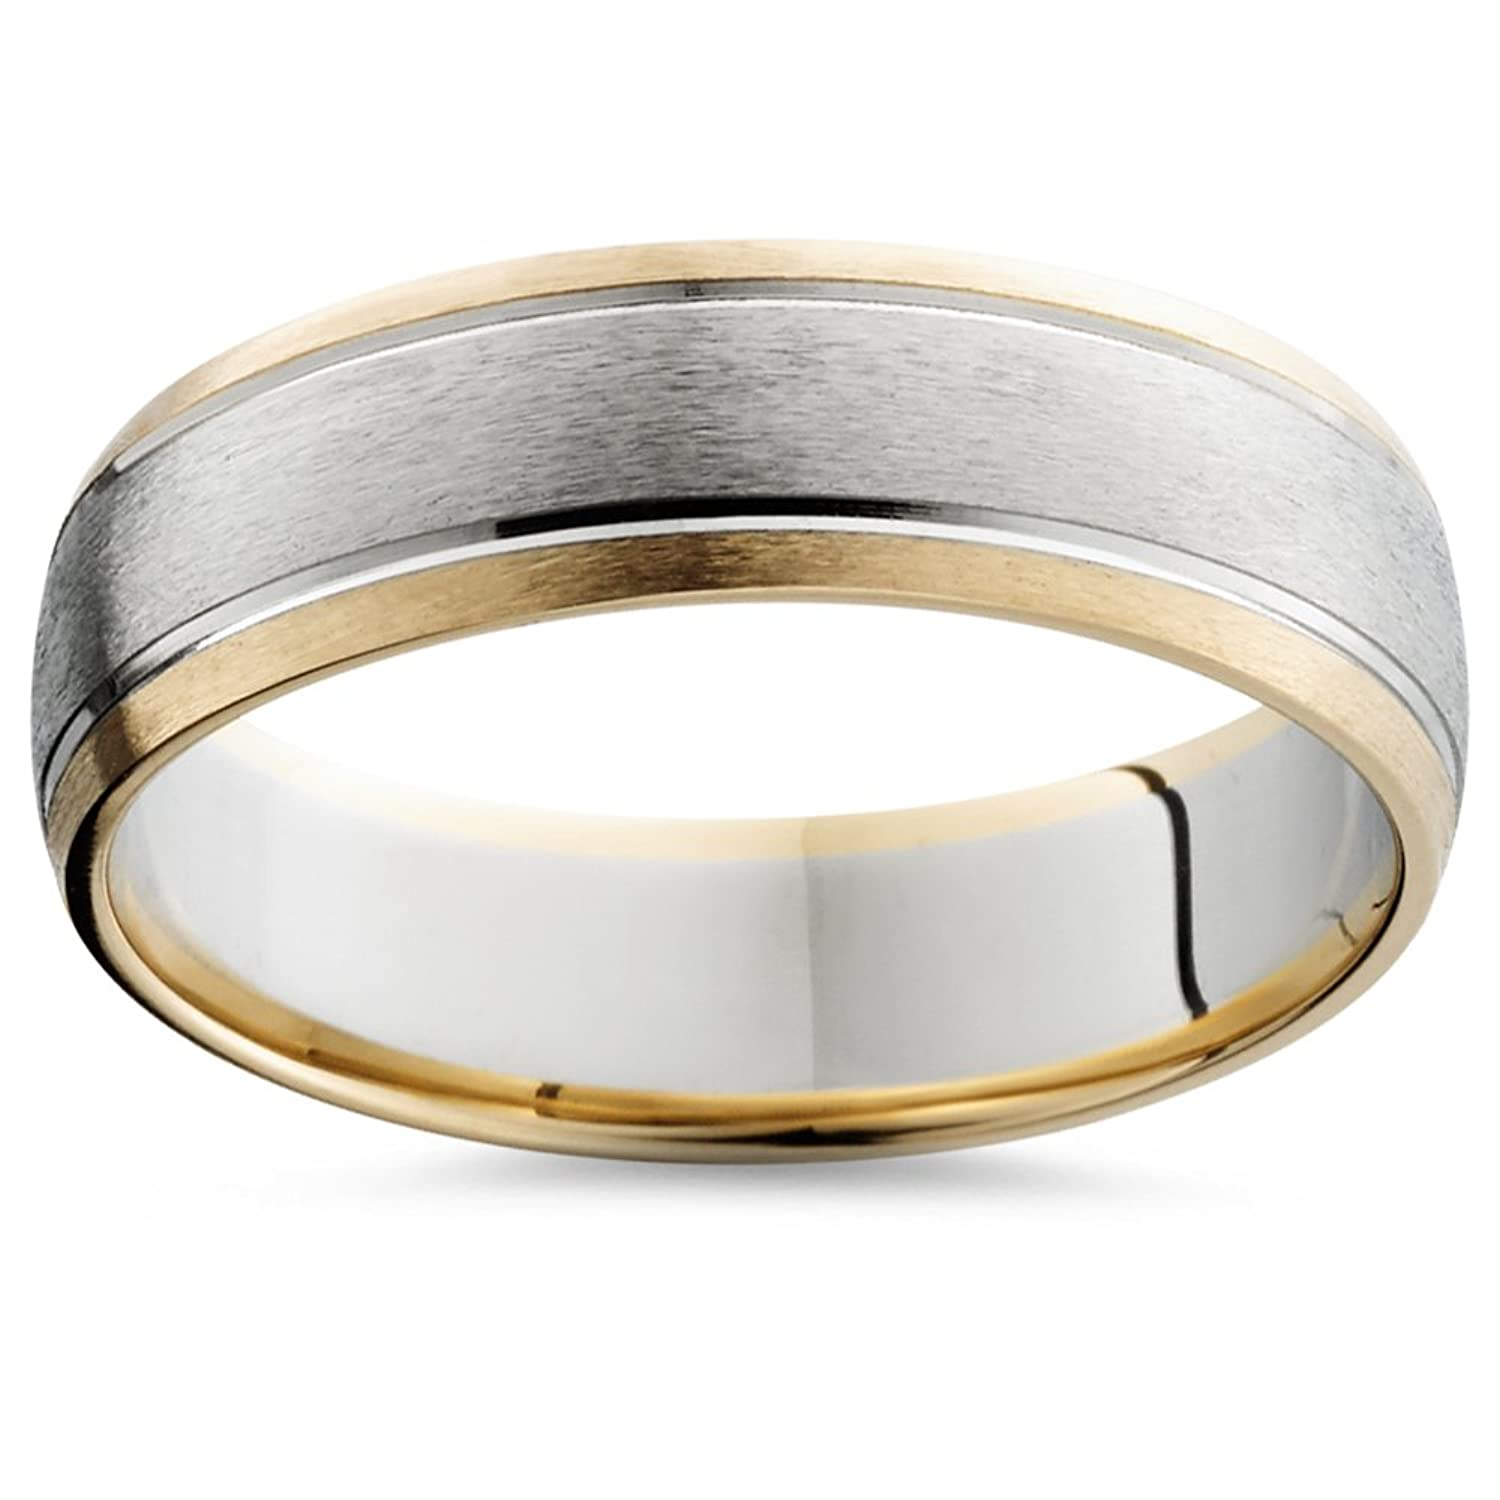 6MM Mens 14k Gold Two Tone Brushed Wedding Ring Band New | Amazon.com